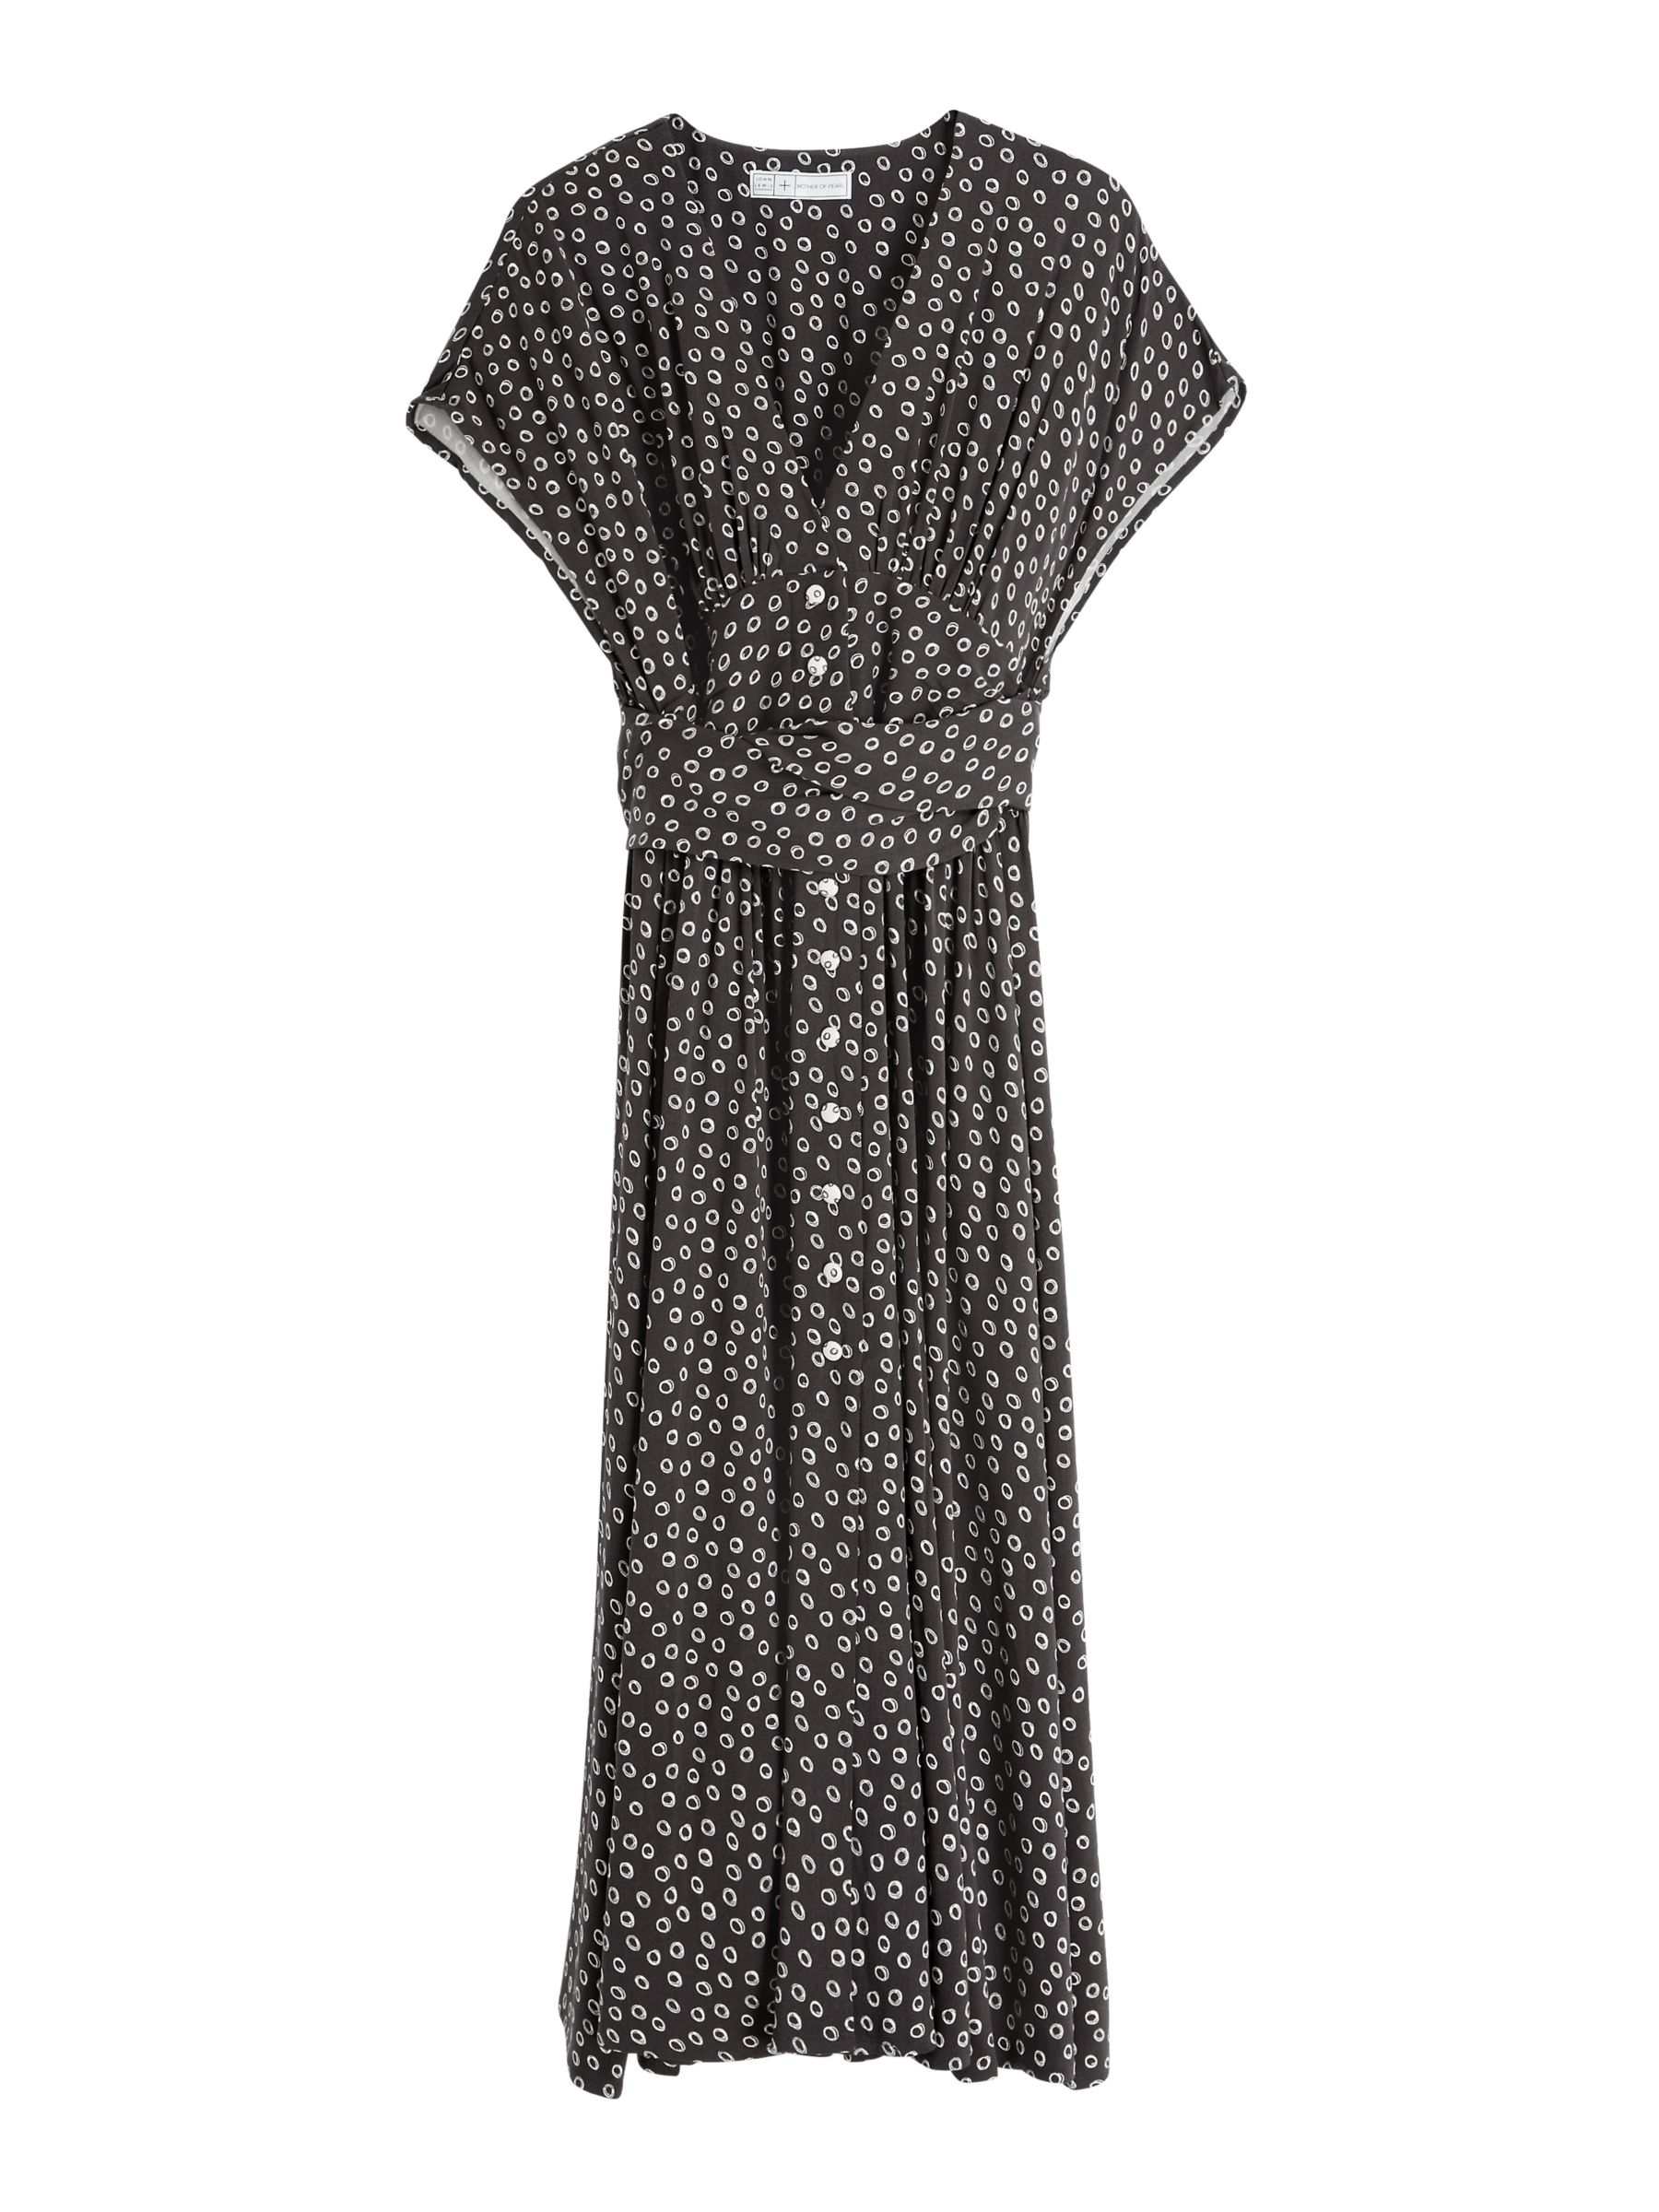 Mother of Pearl ECOVERO™ Spot Bow Back Dress, Black/White